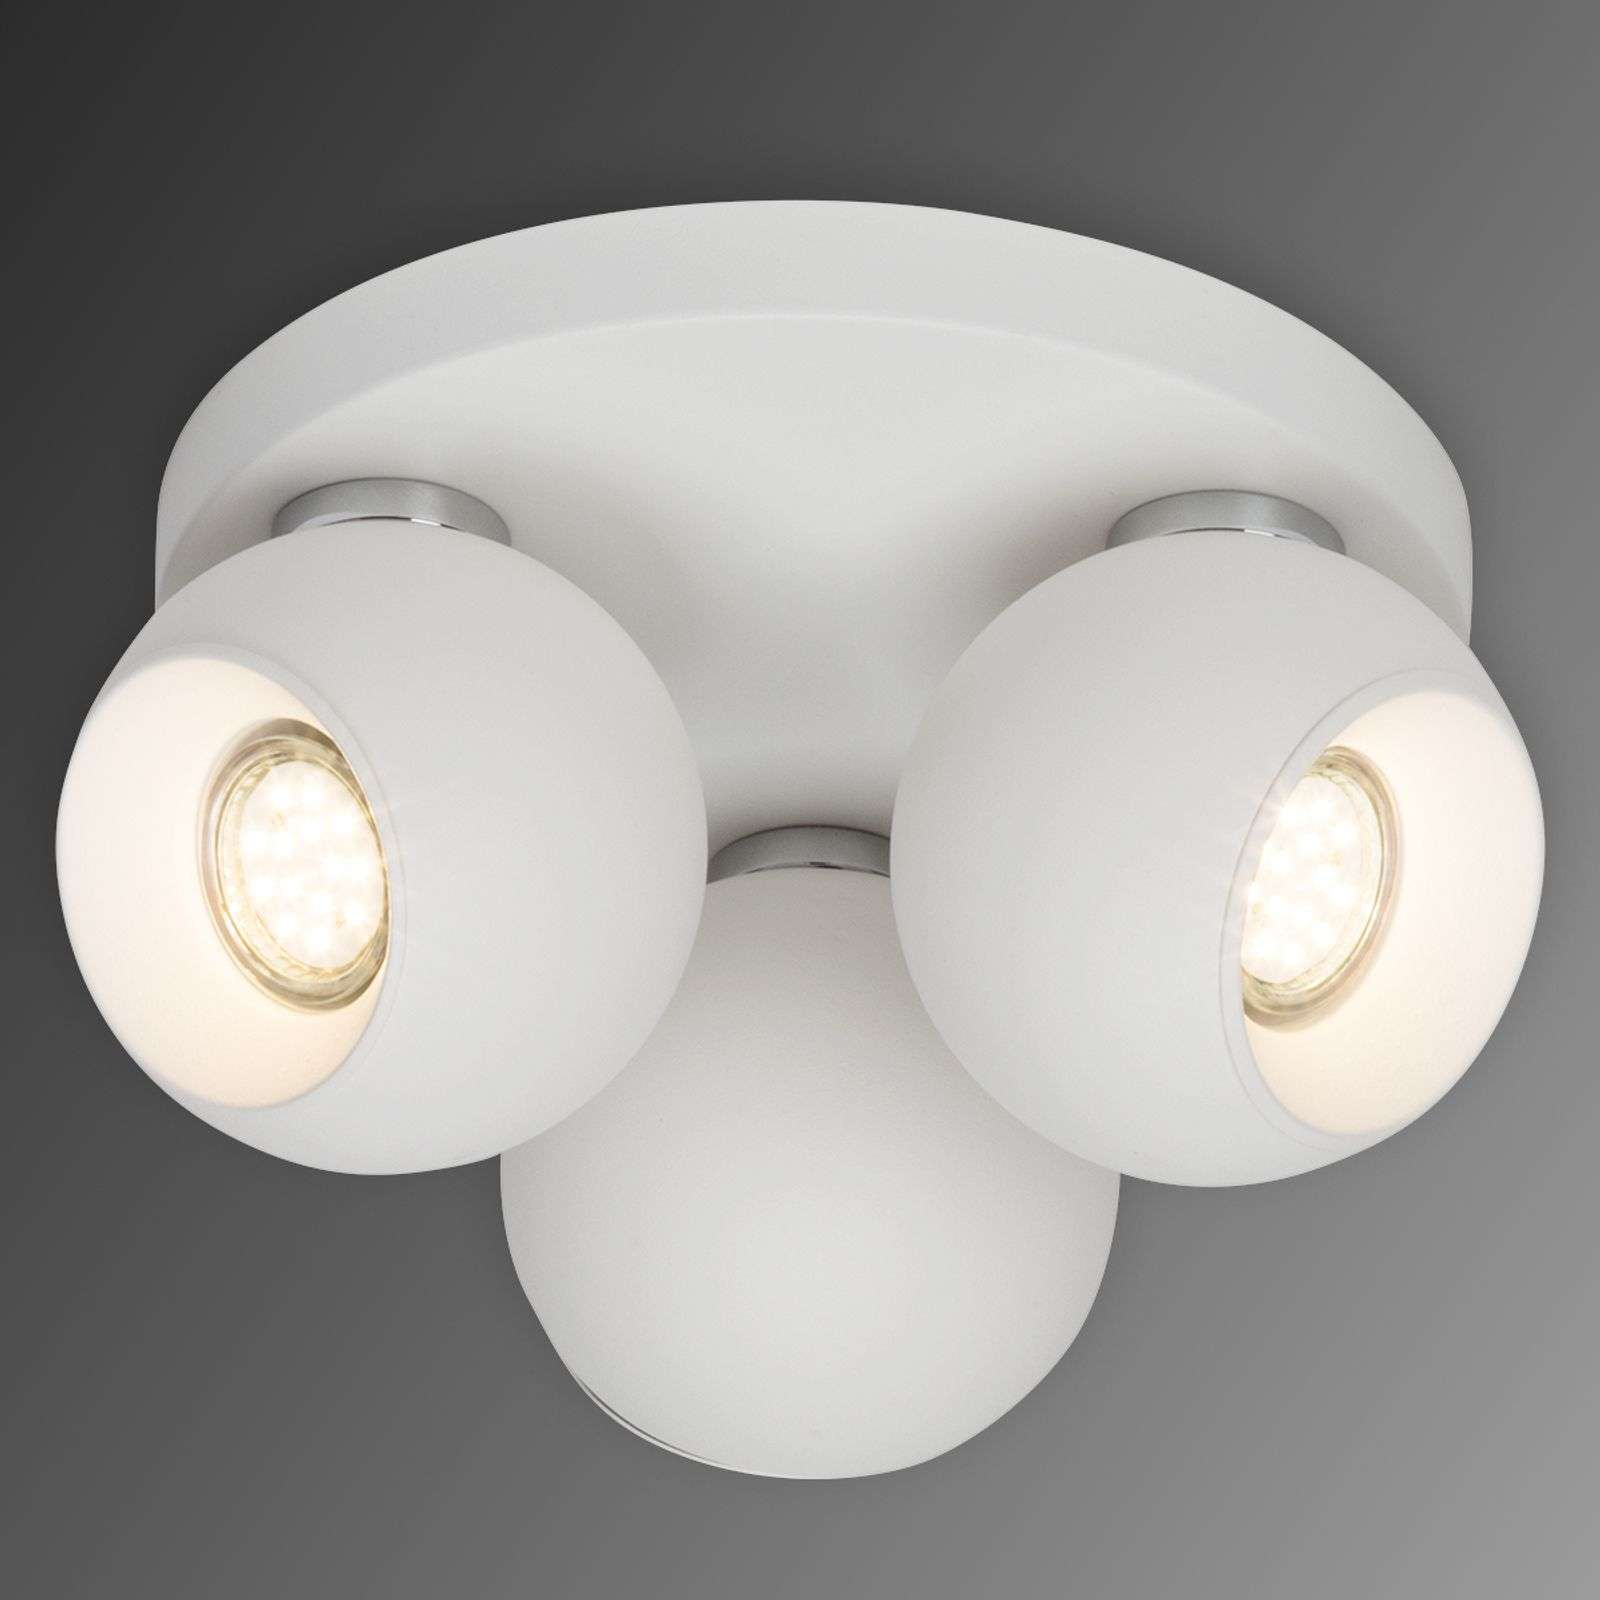 Plafonnier LED circulaire White Ball, 3 lampes